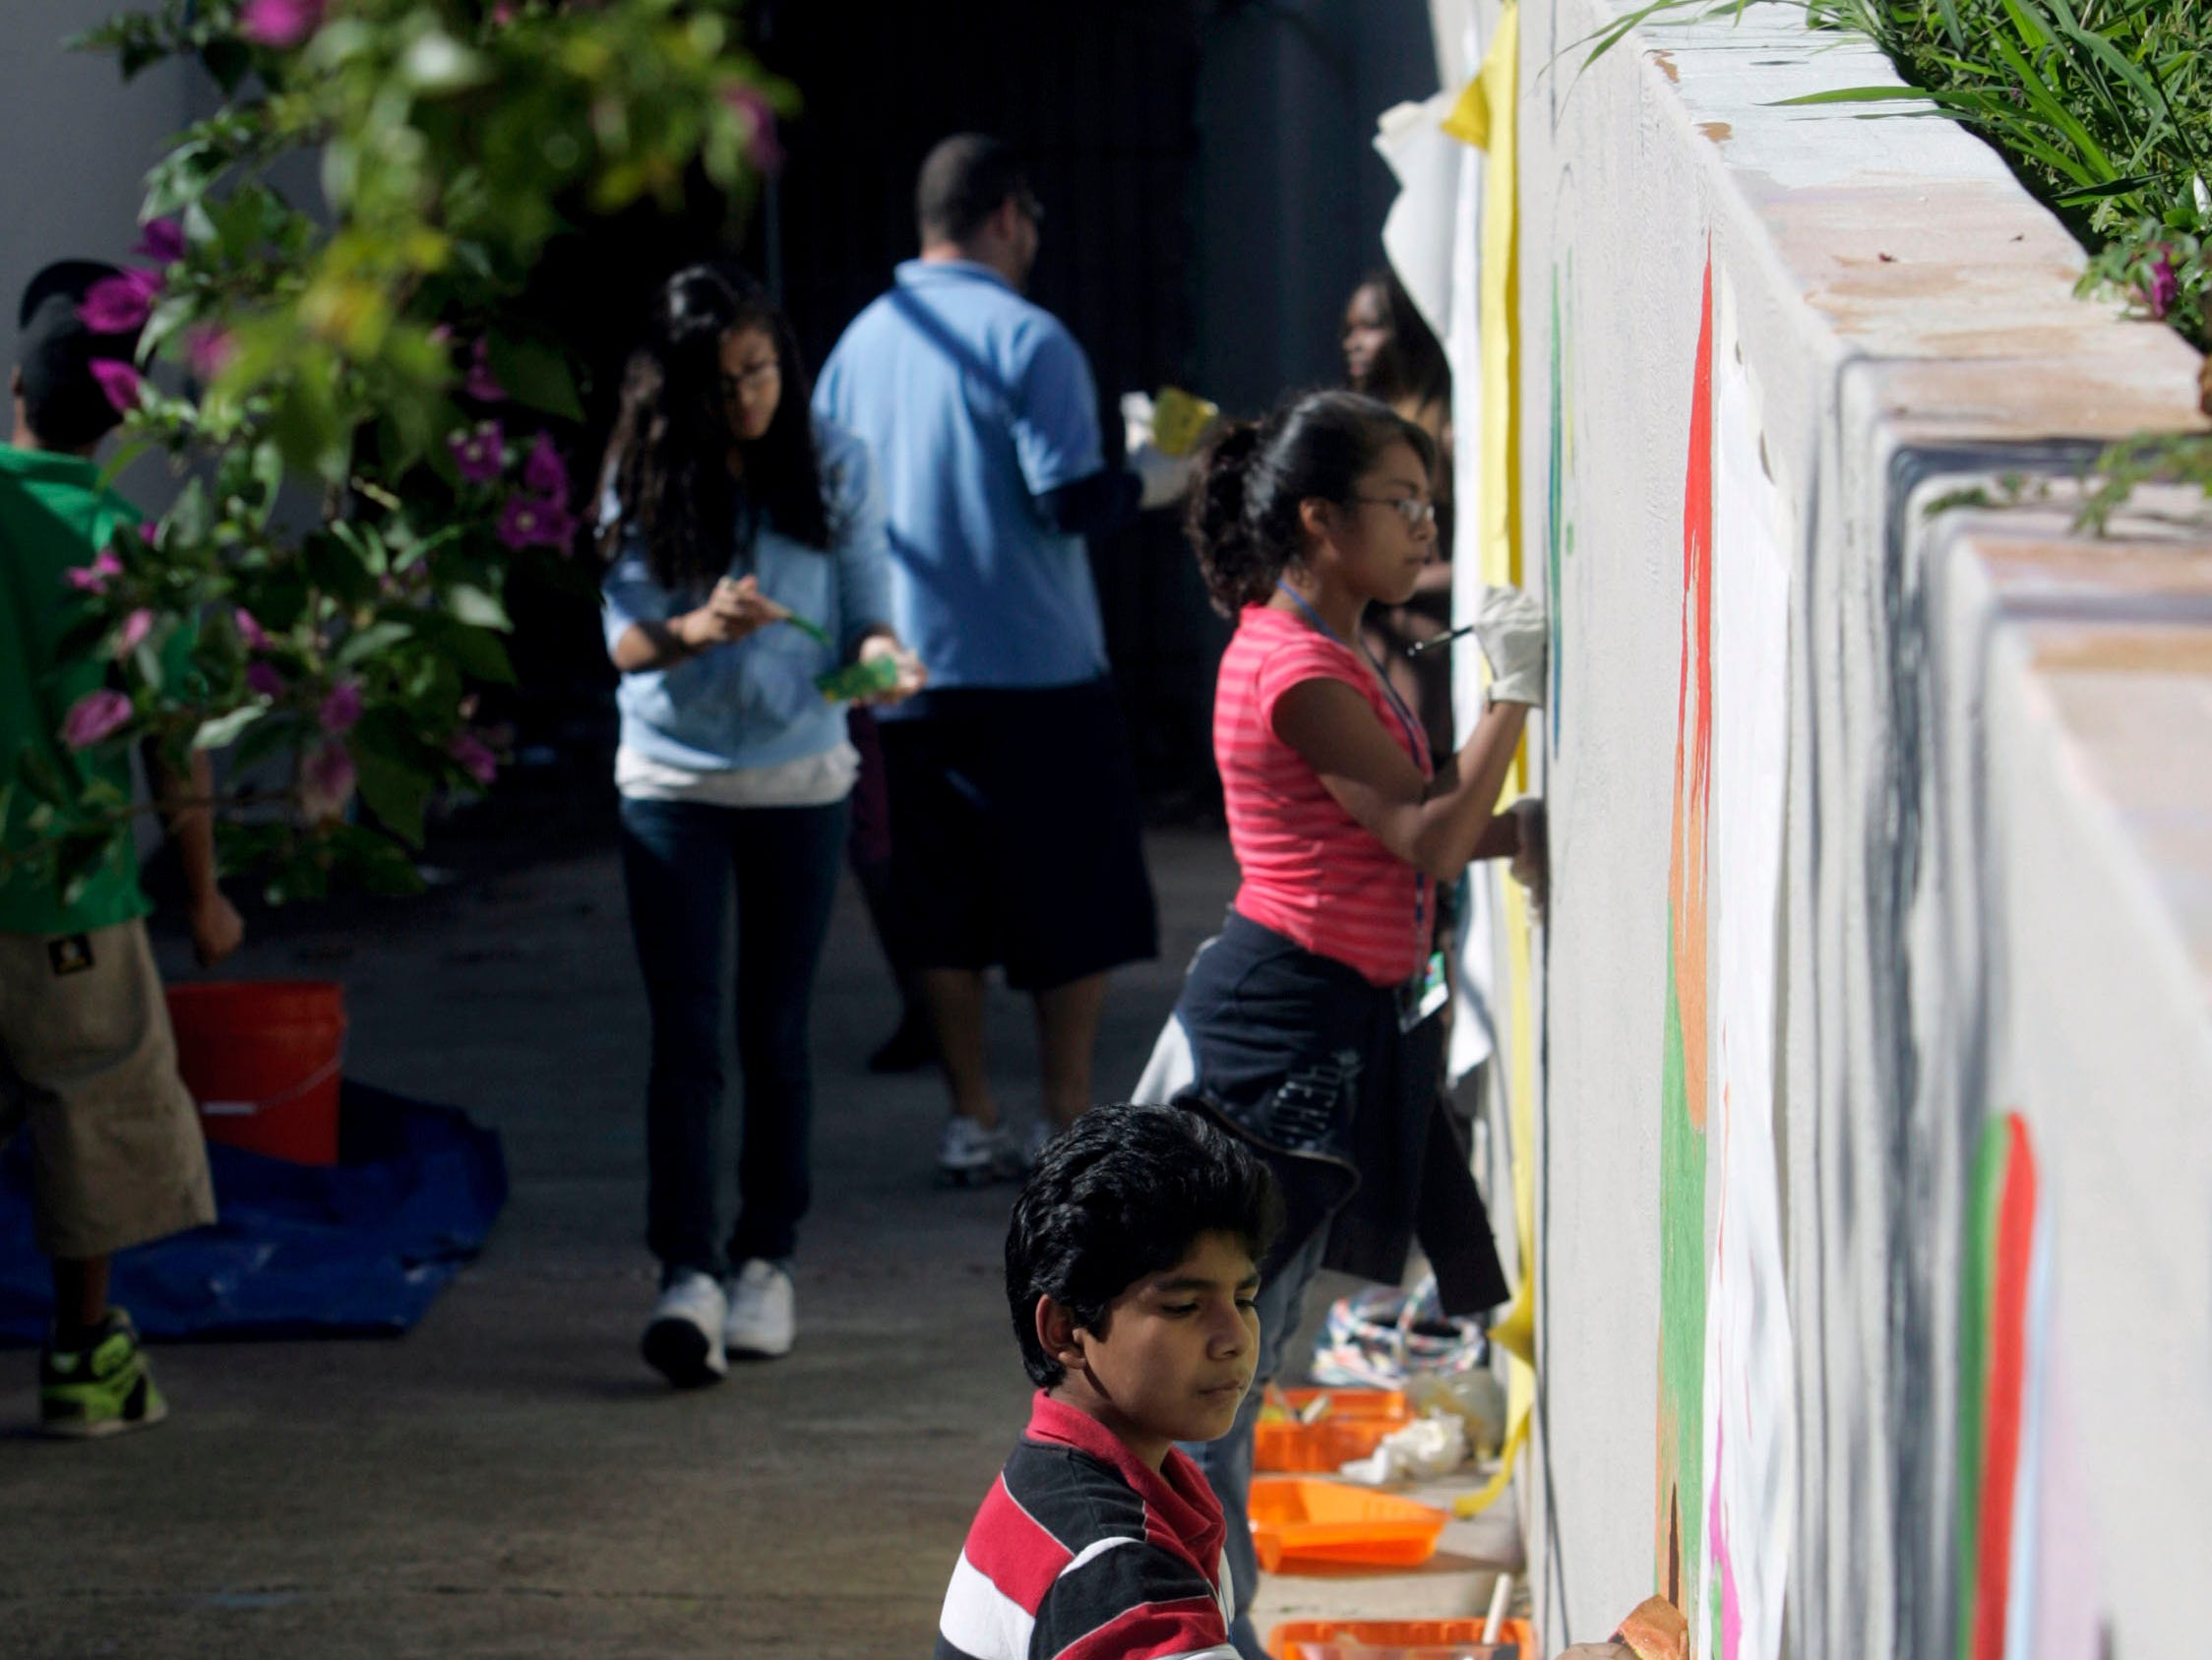 Jacob Harris, 10 (bottom center), works with other children to paint surfboard murals Wednesday, Nov. 25, 2009 along the walls leading to the entrance of the old bluff tunnel at La Retama Park in Corpus Christi.